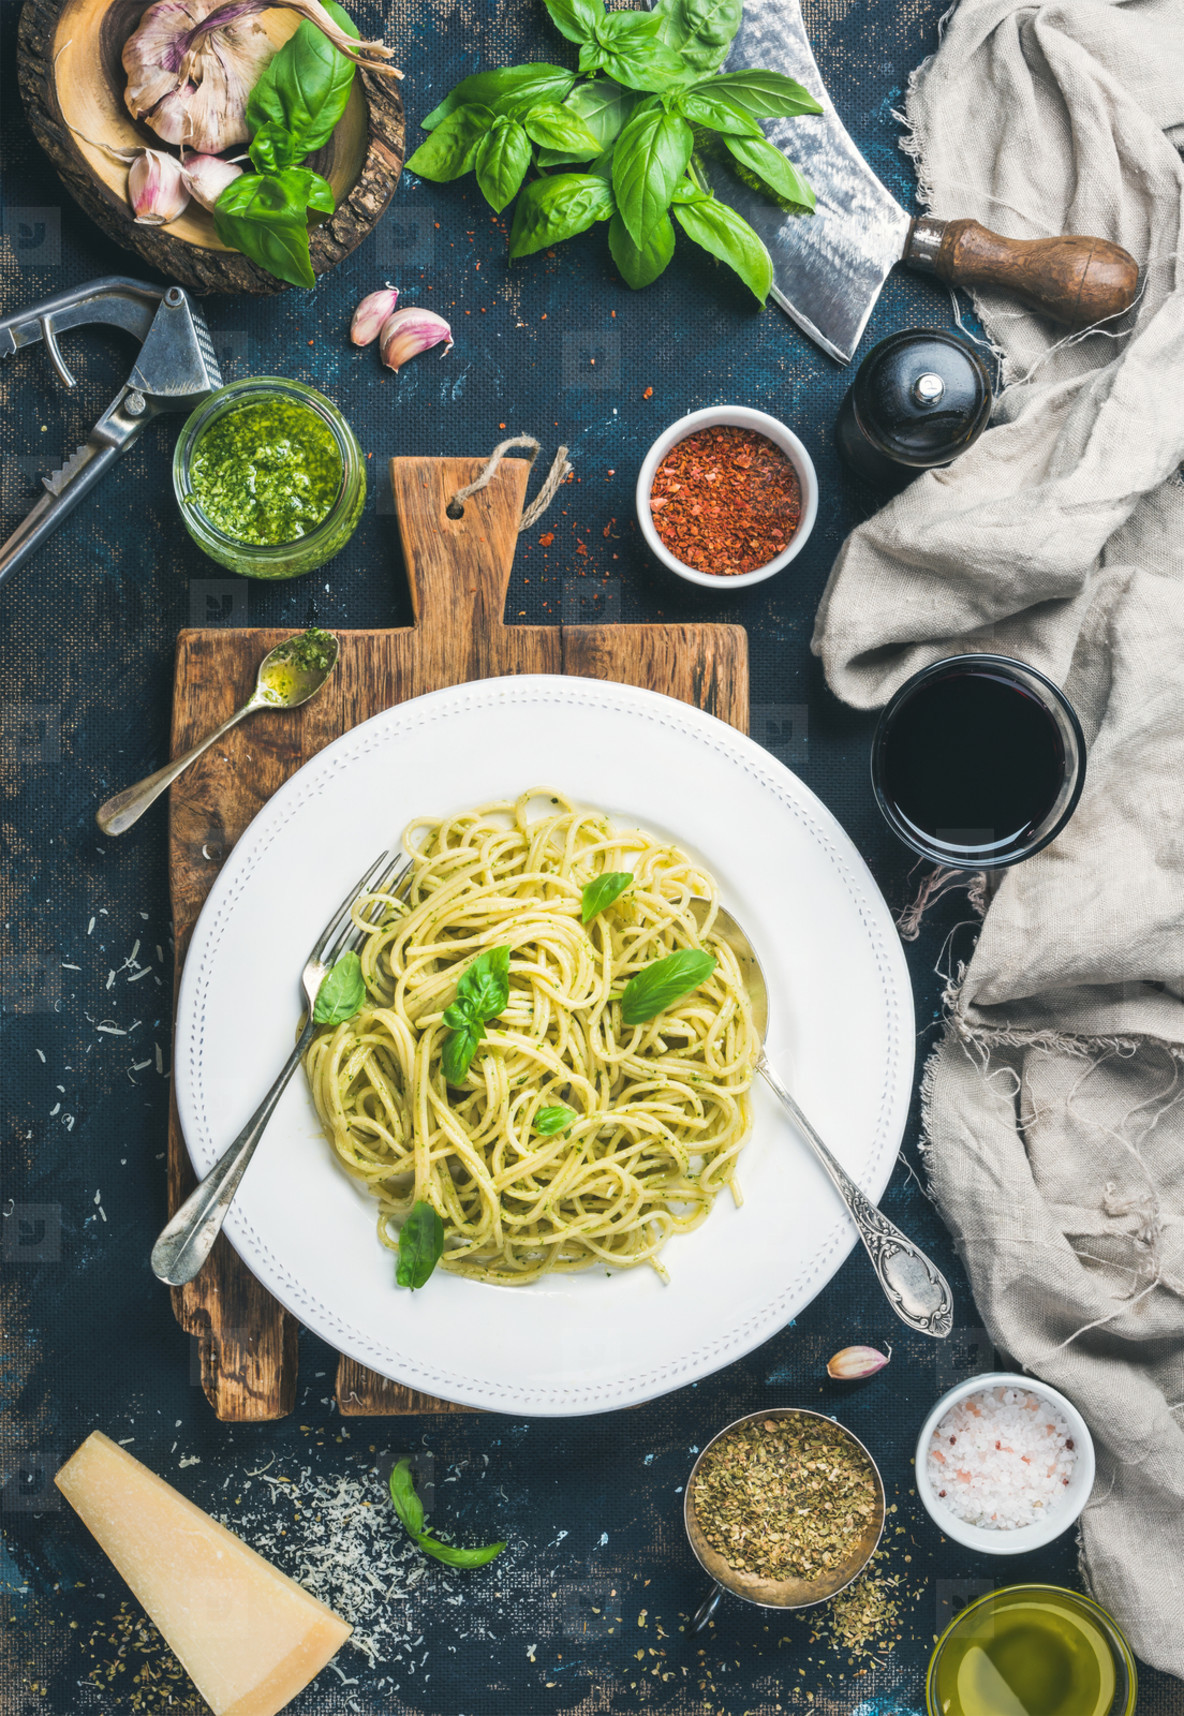 Spaghetti with pesto sauce  parmesan cheese  basil and wine